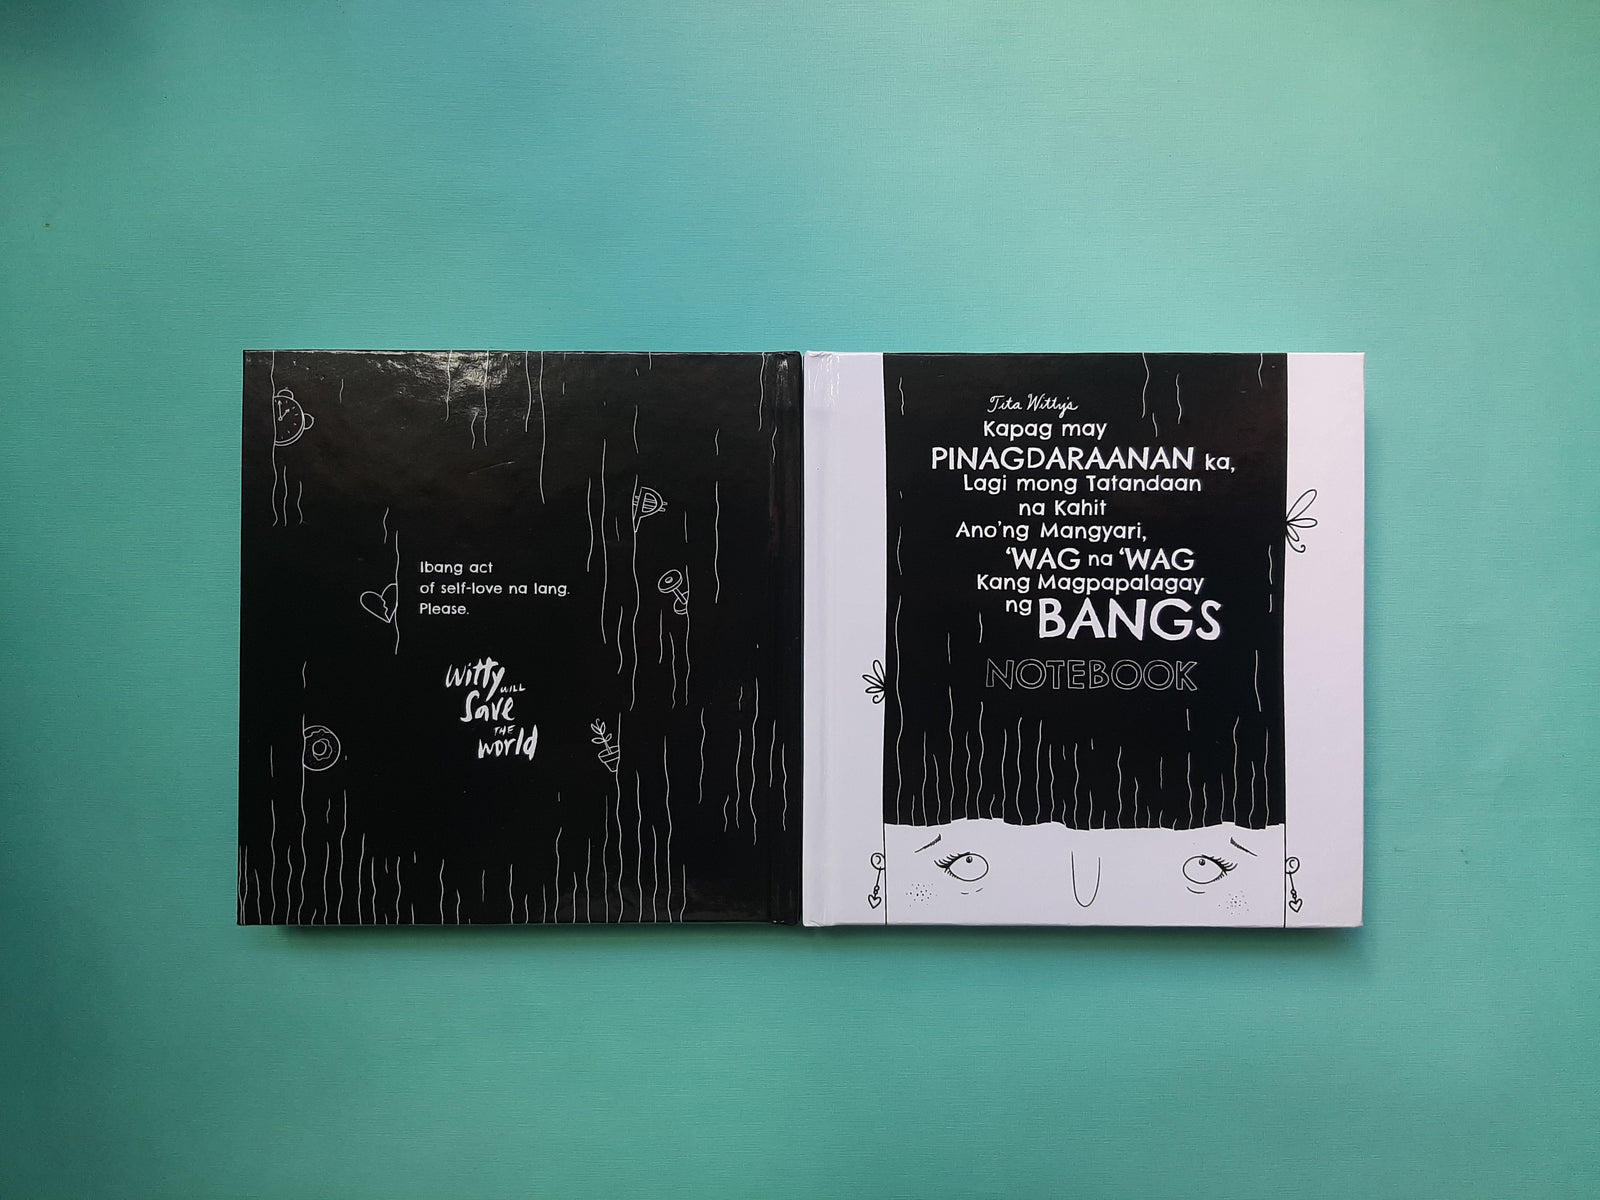 The Bangs Notebook